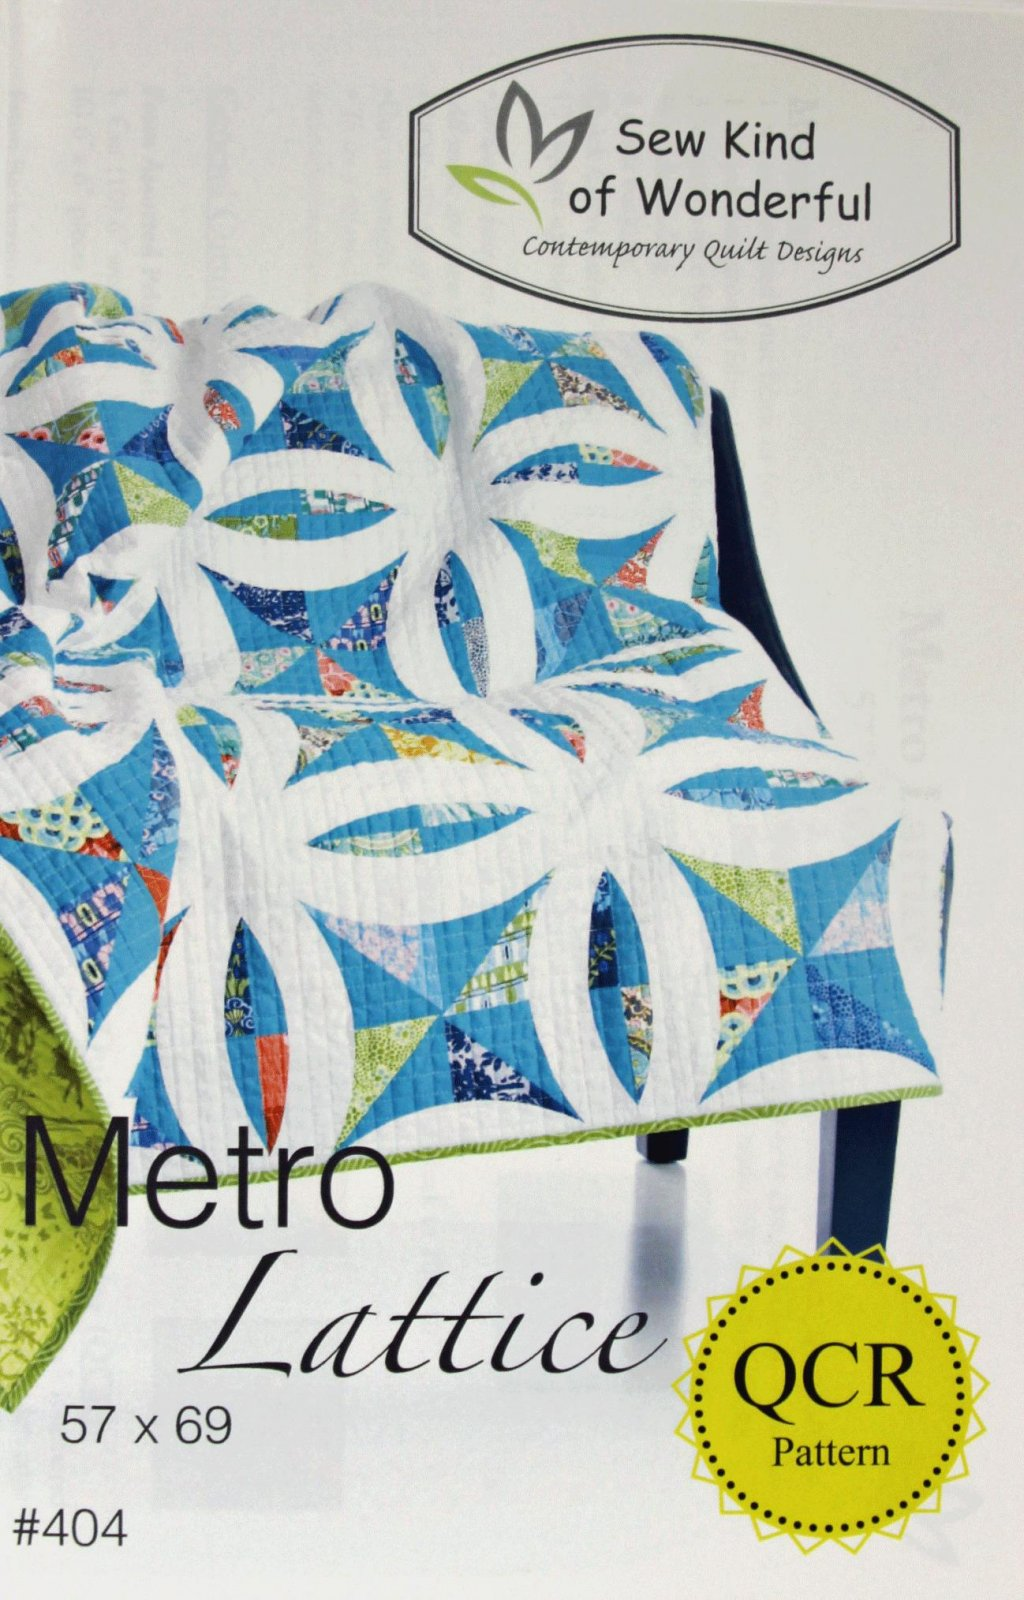 Metro Lattice Pattern